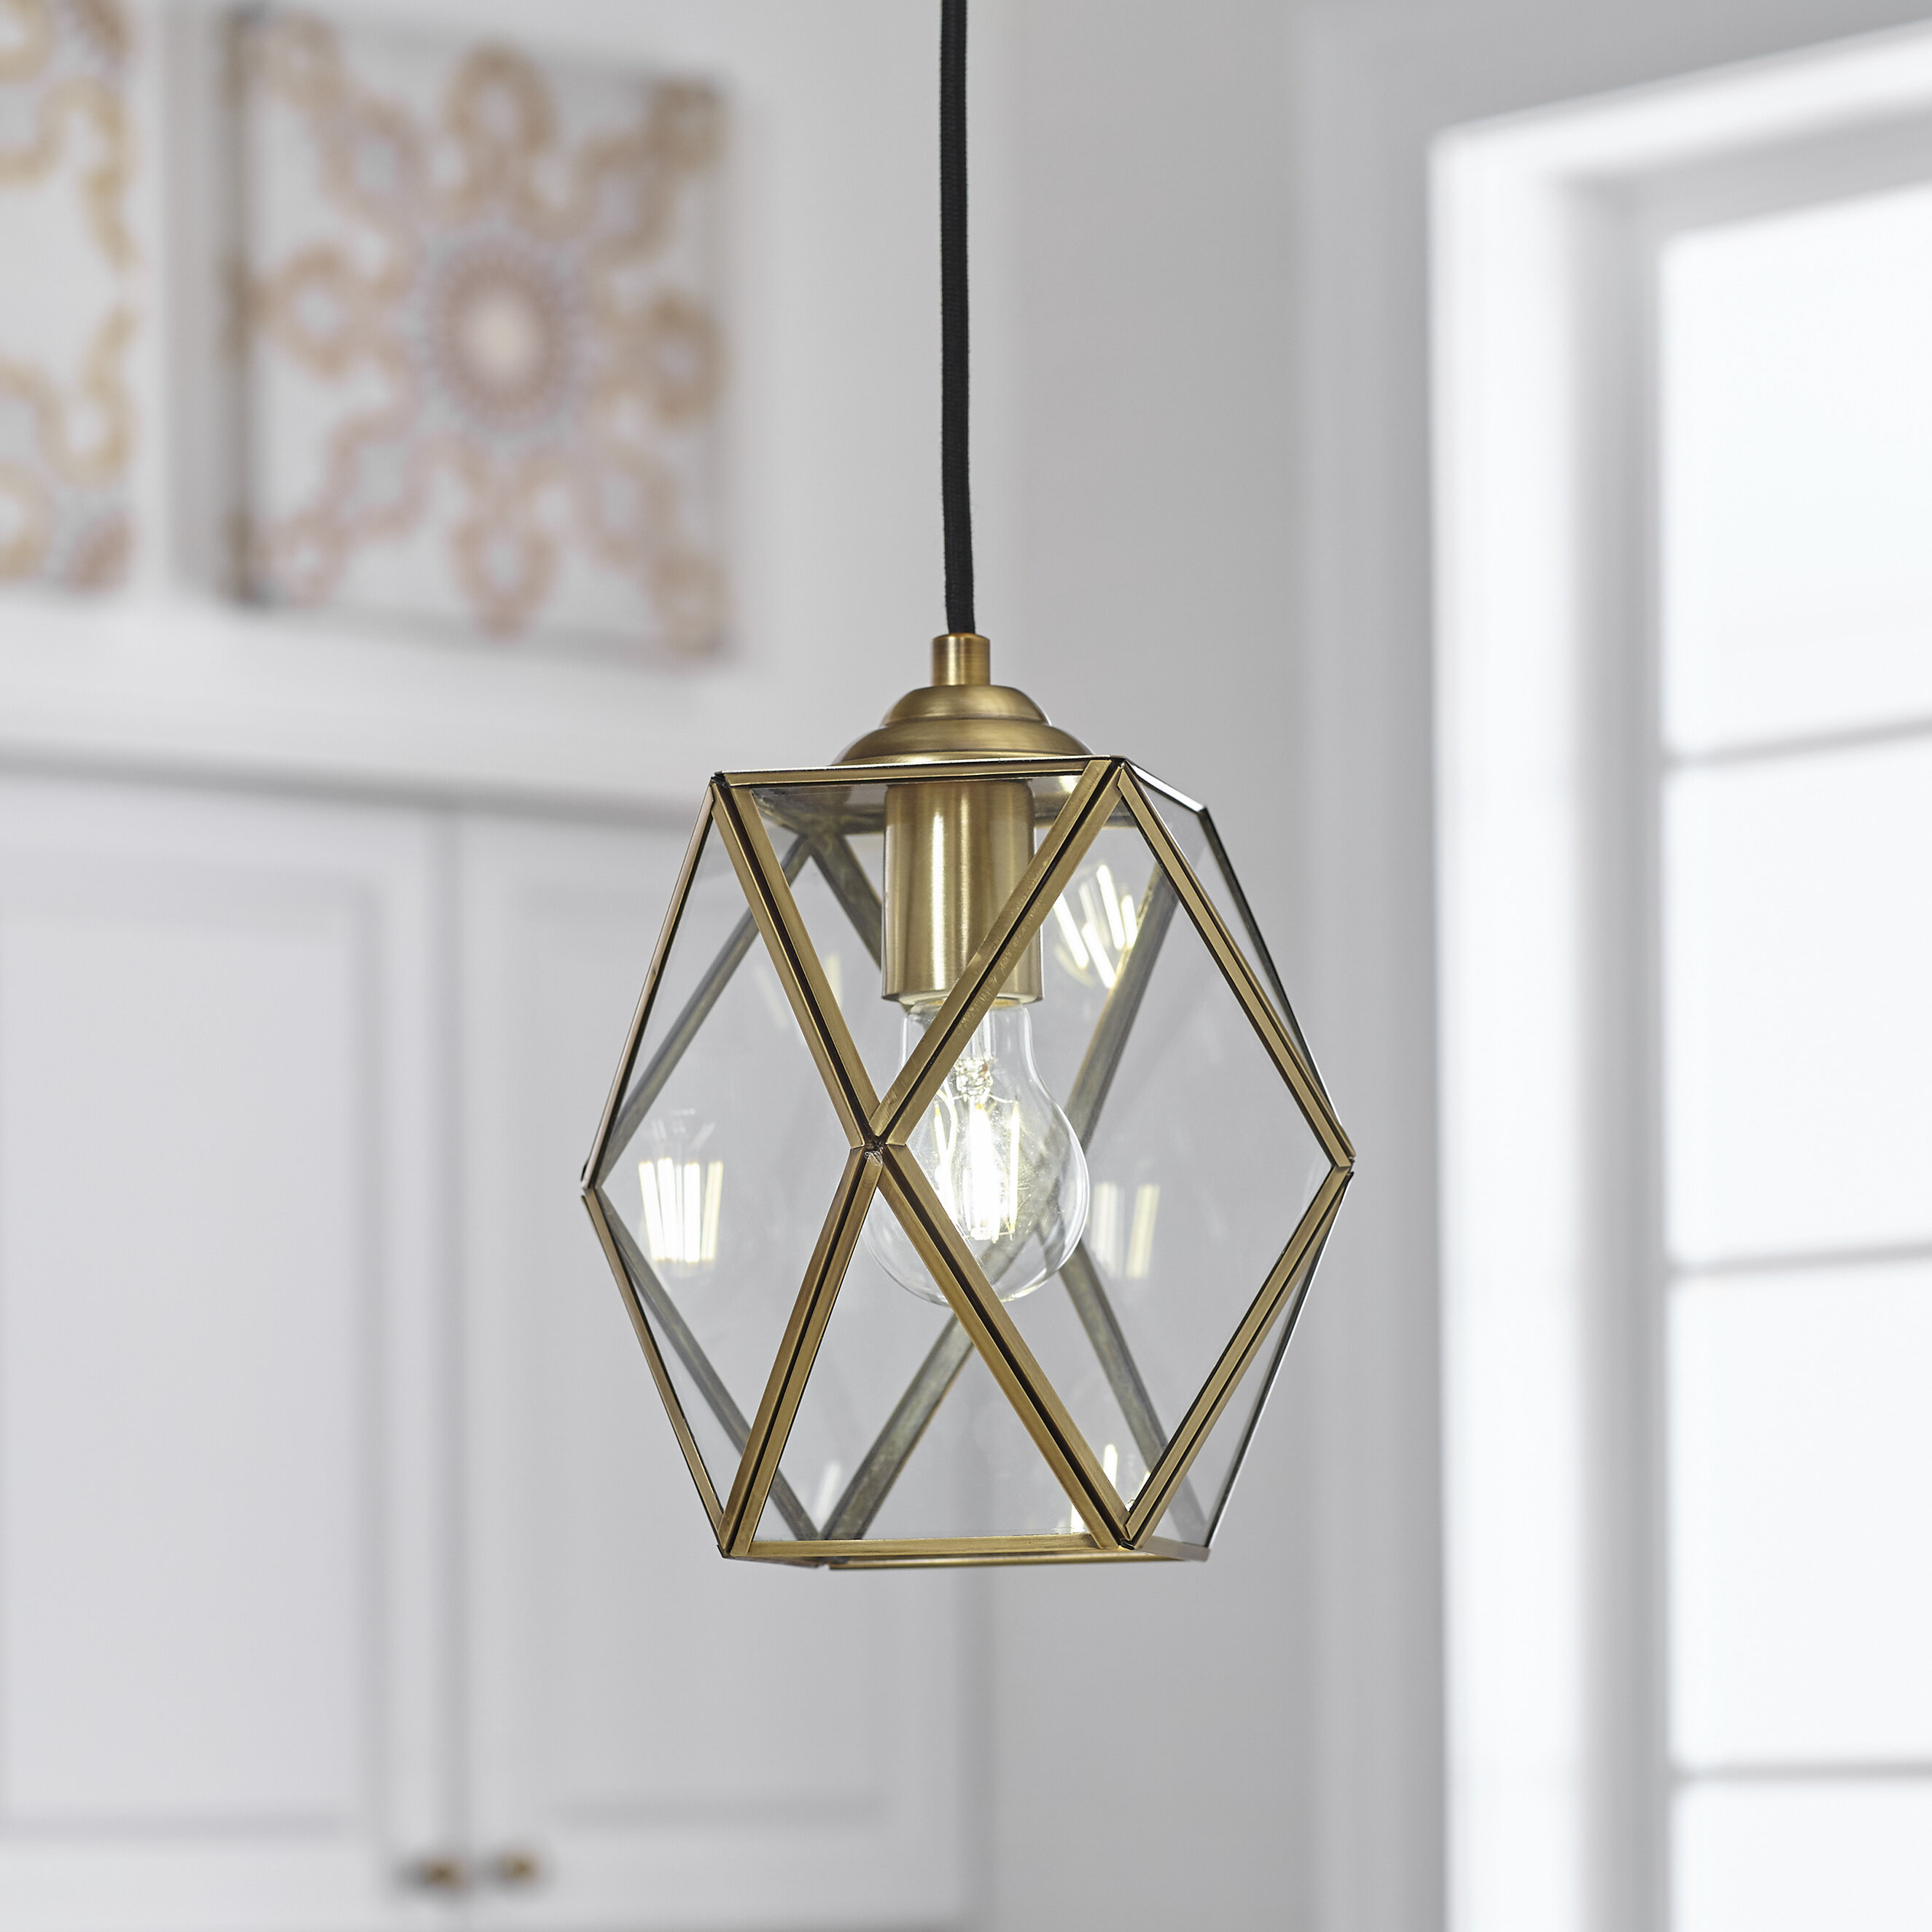 Wrought Studio Kumar 1 Light Single Geometric Pendant Reviews Wayfair Ca